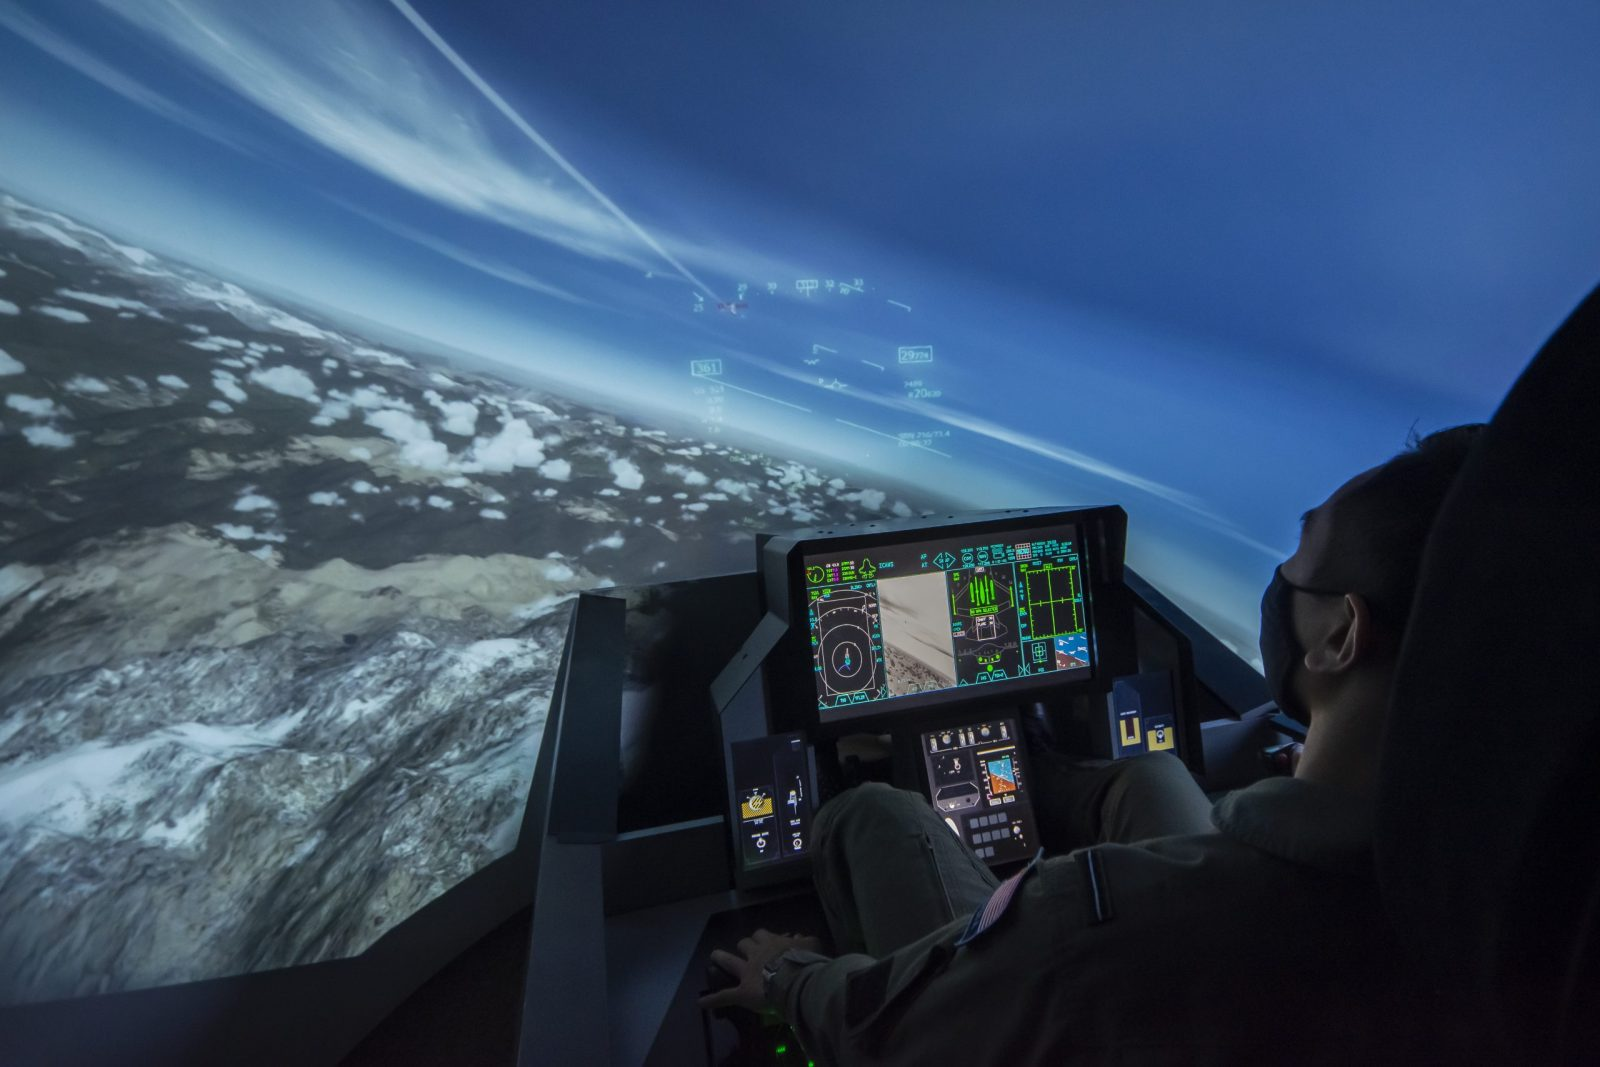 ITPS student in green flight suit using F-18 aircraft simulator